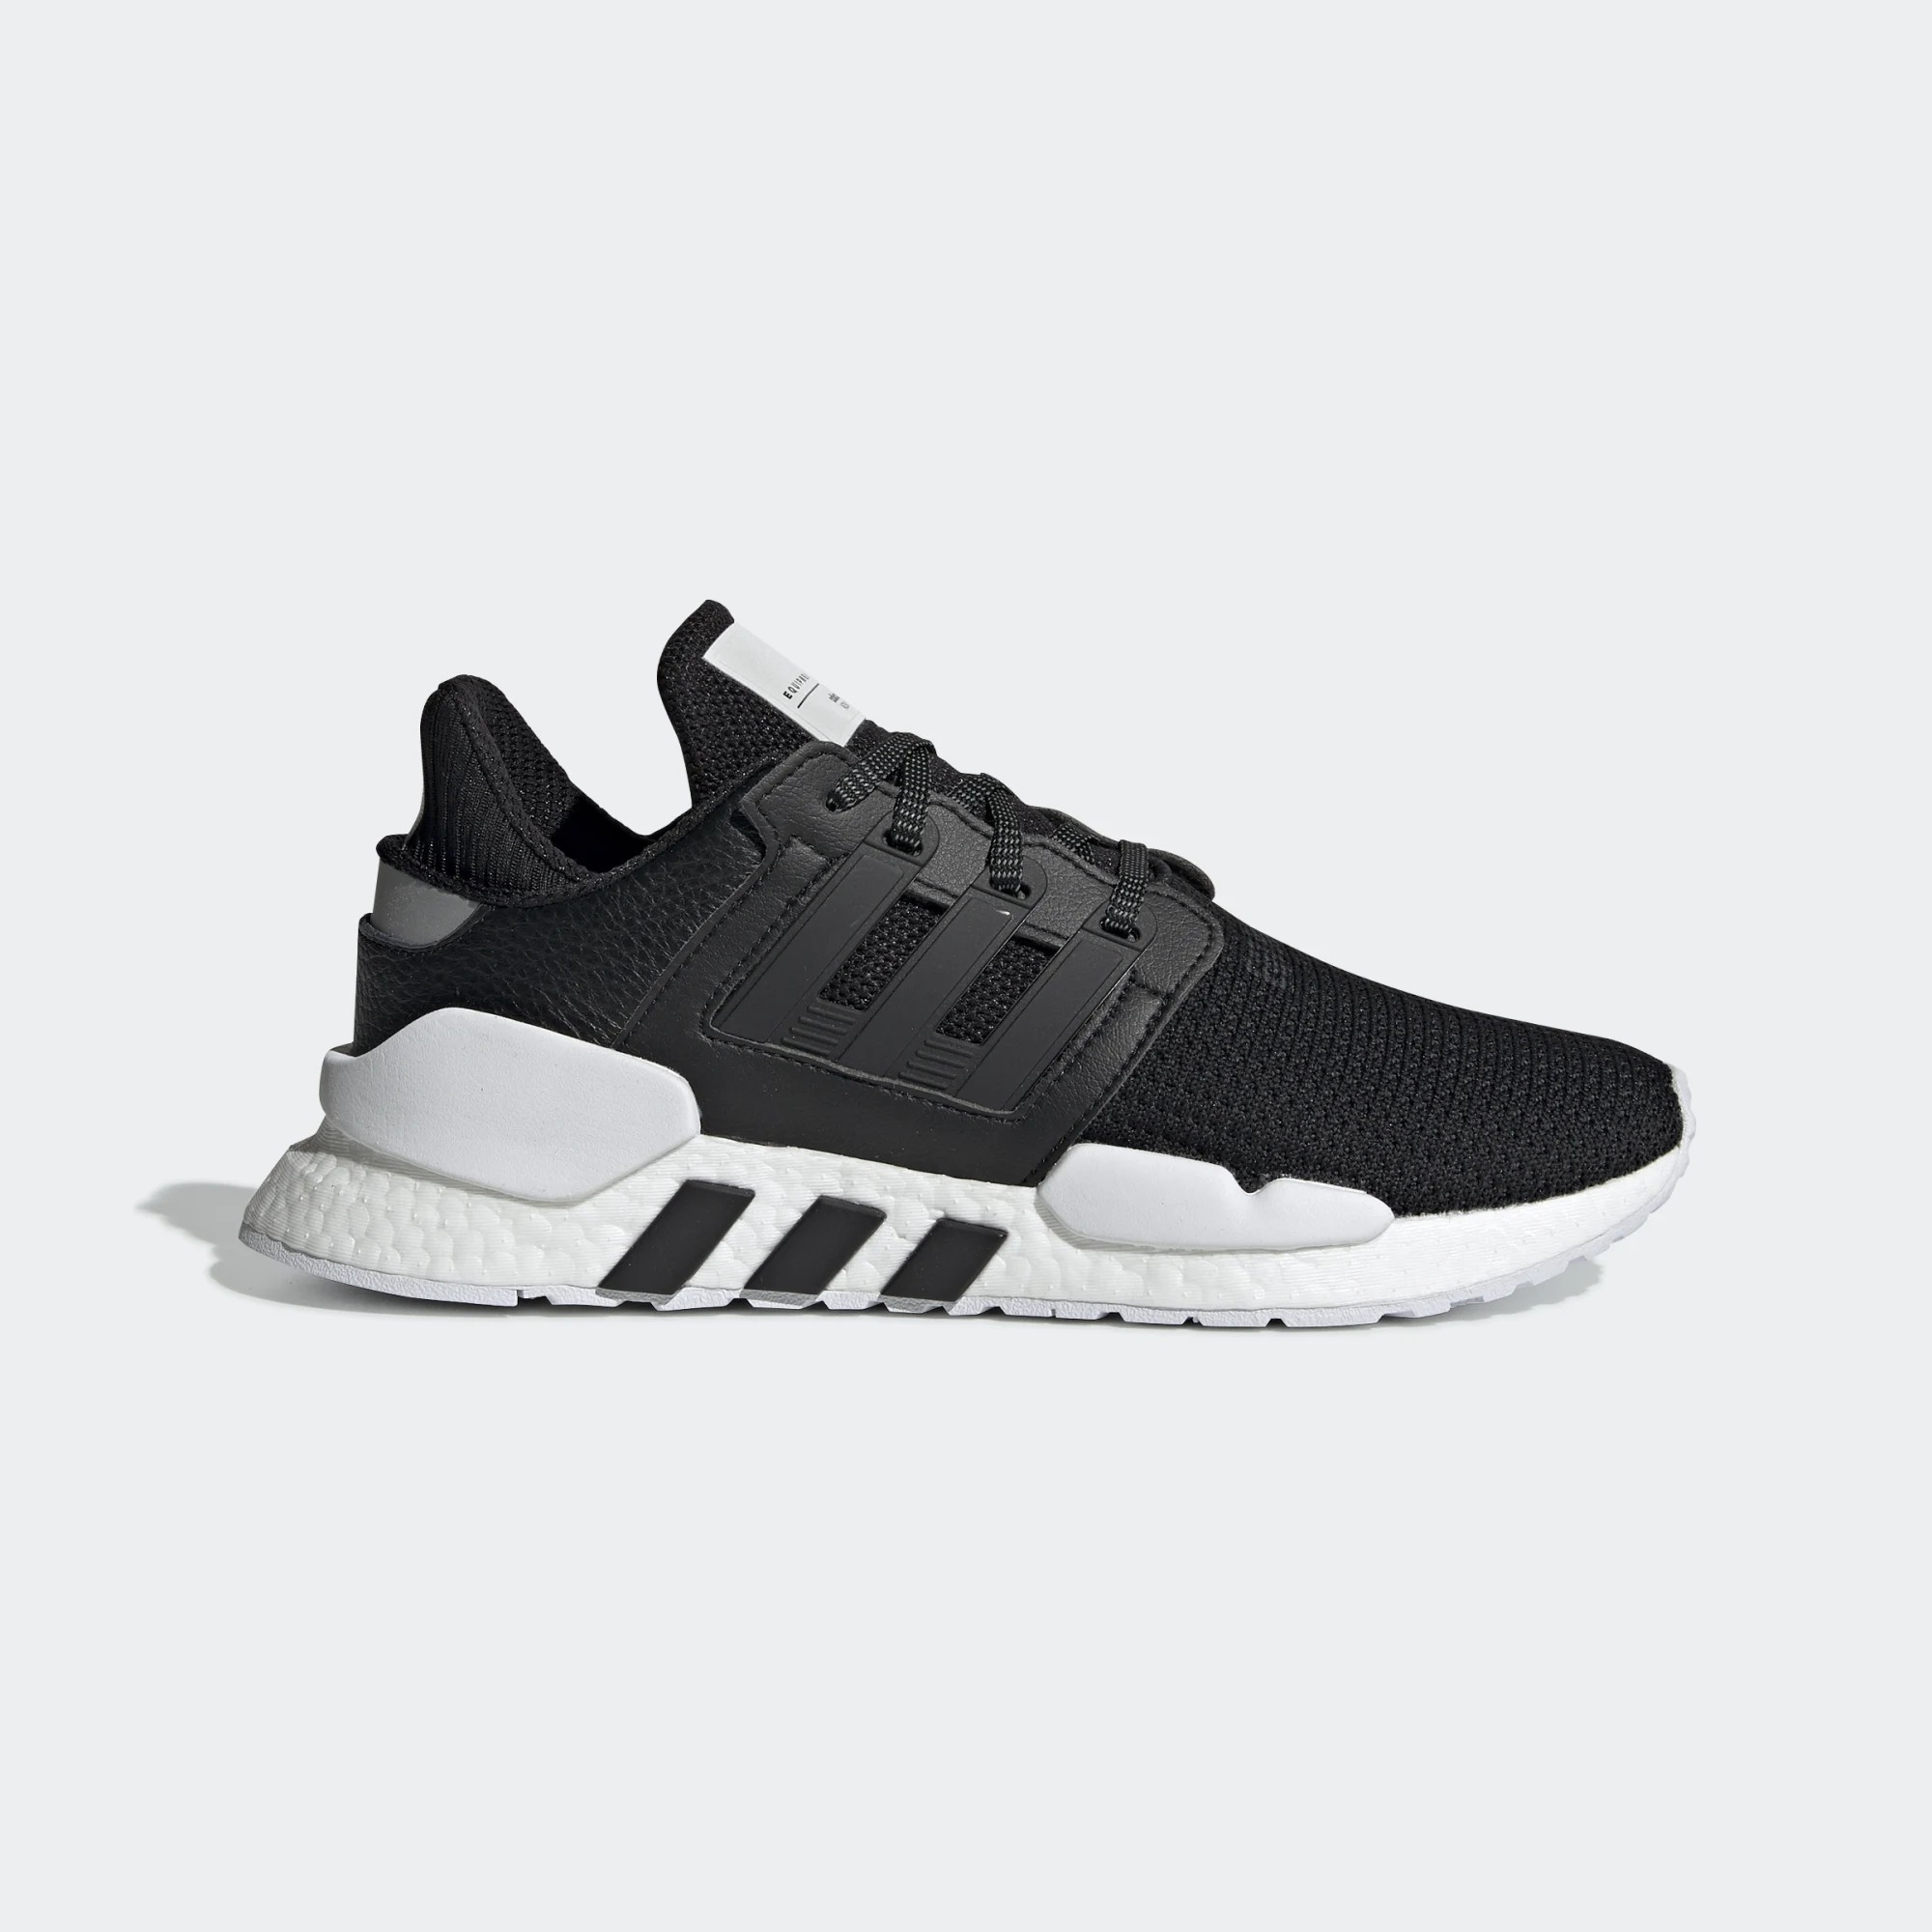 Adidas EQT Support 91/18 Black BD7793